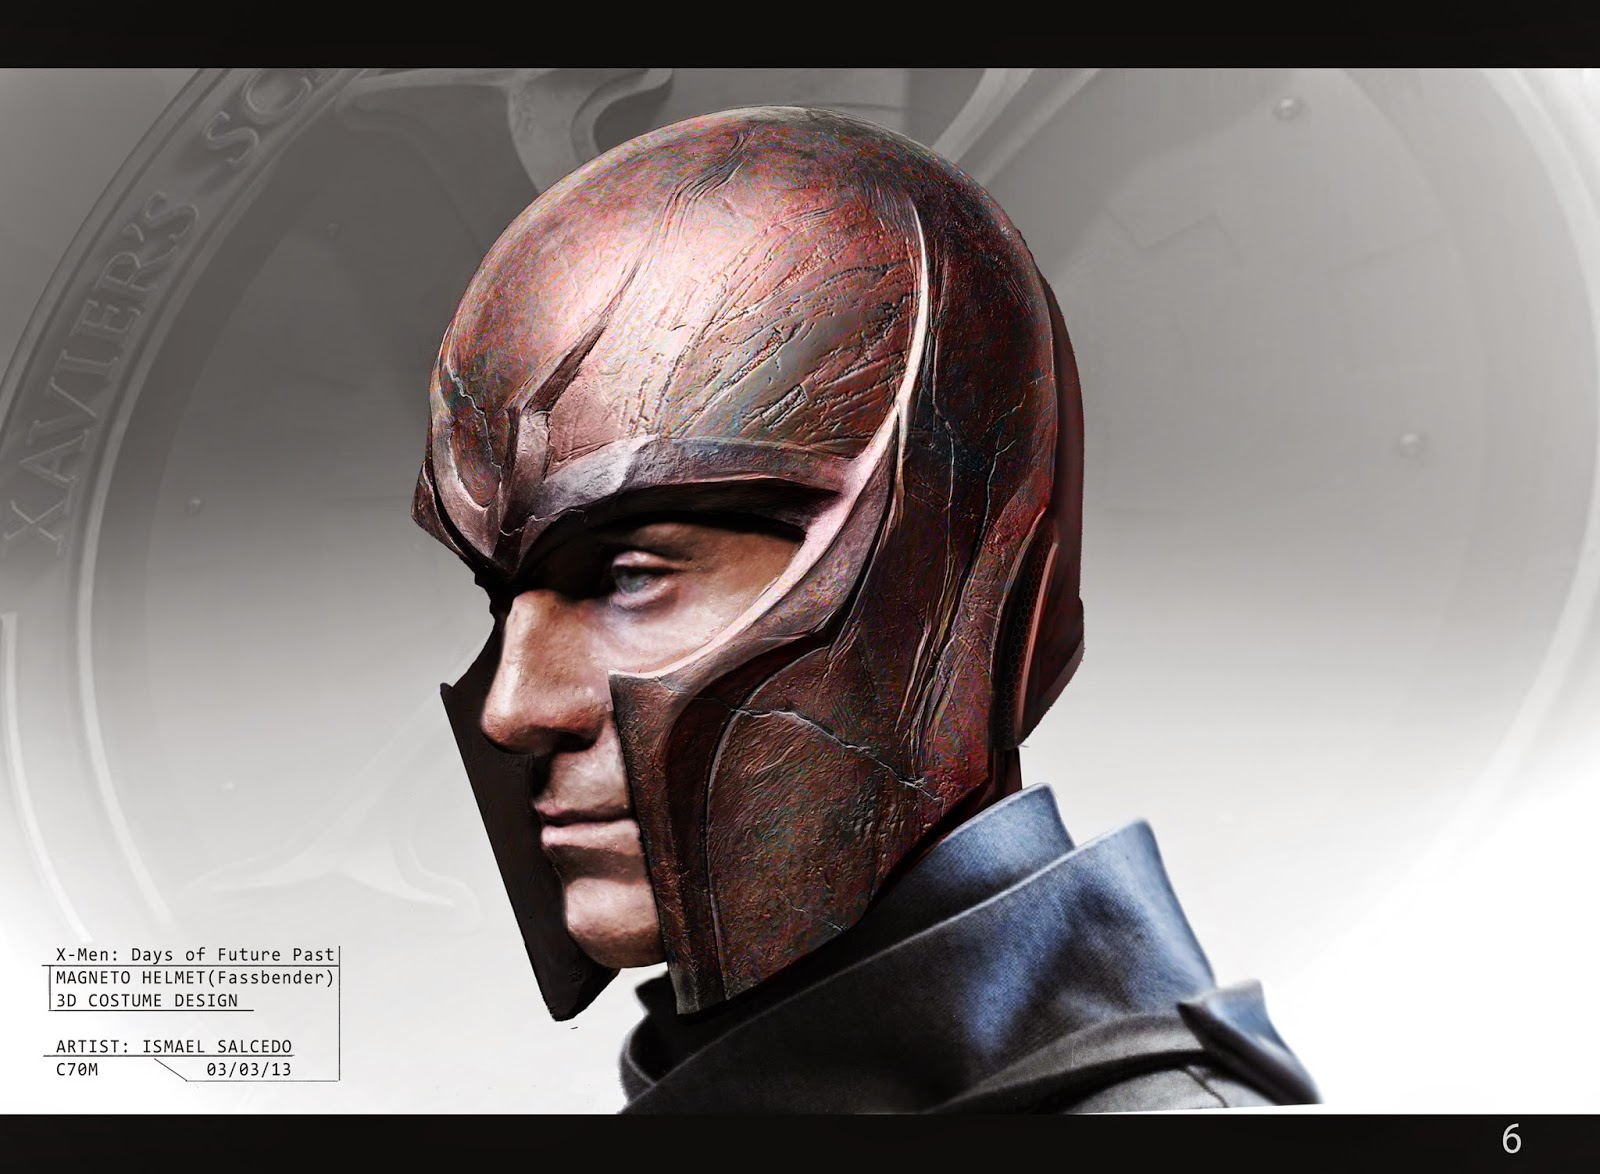 magneto helmet days of future past - photo #1